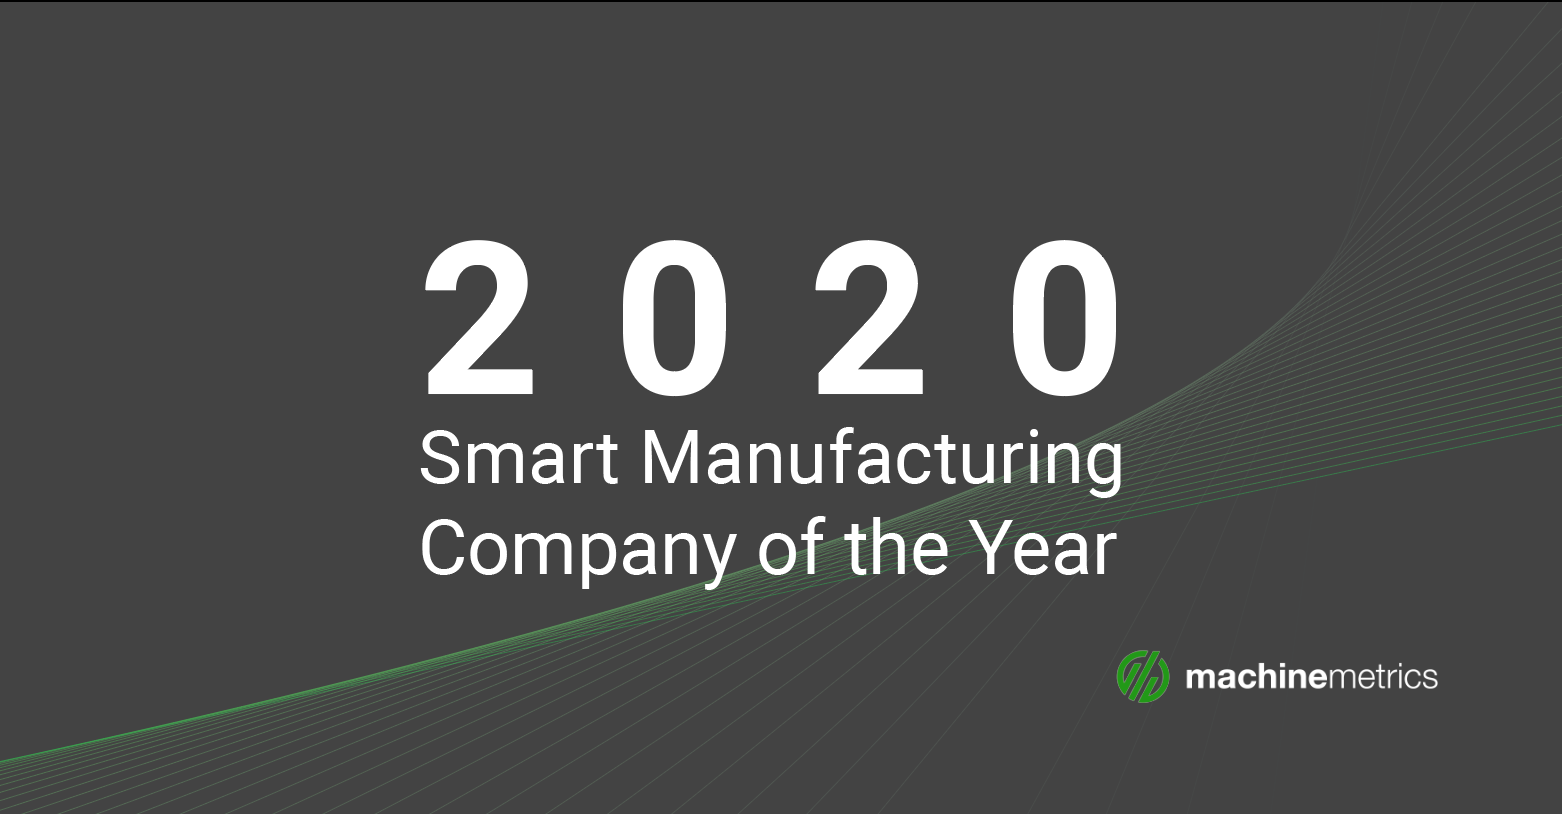 MachineMetrics named 2020 Smart Manufacturing Company of the Year